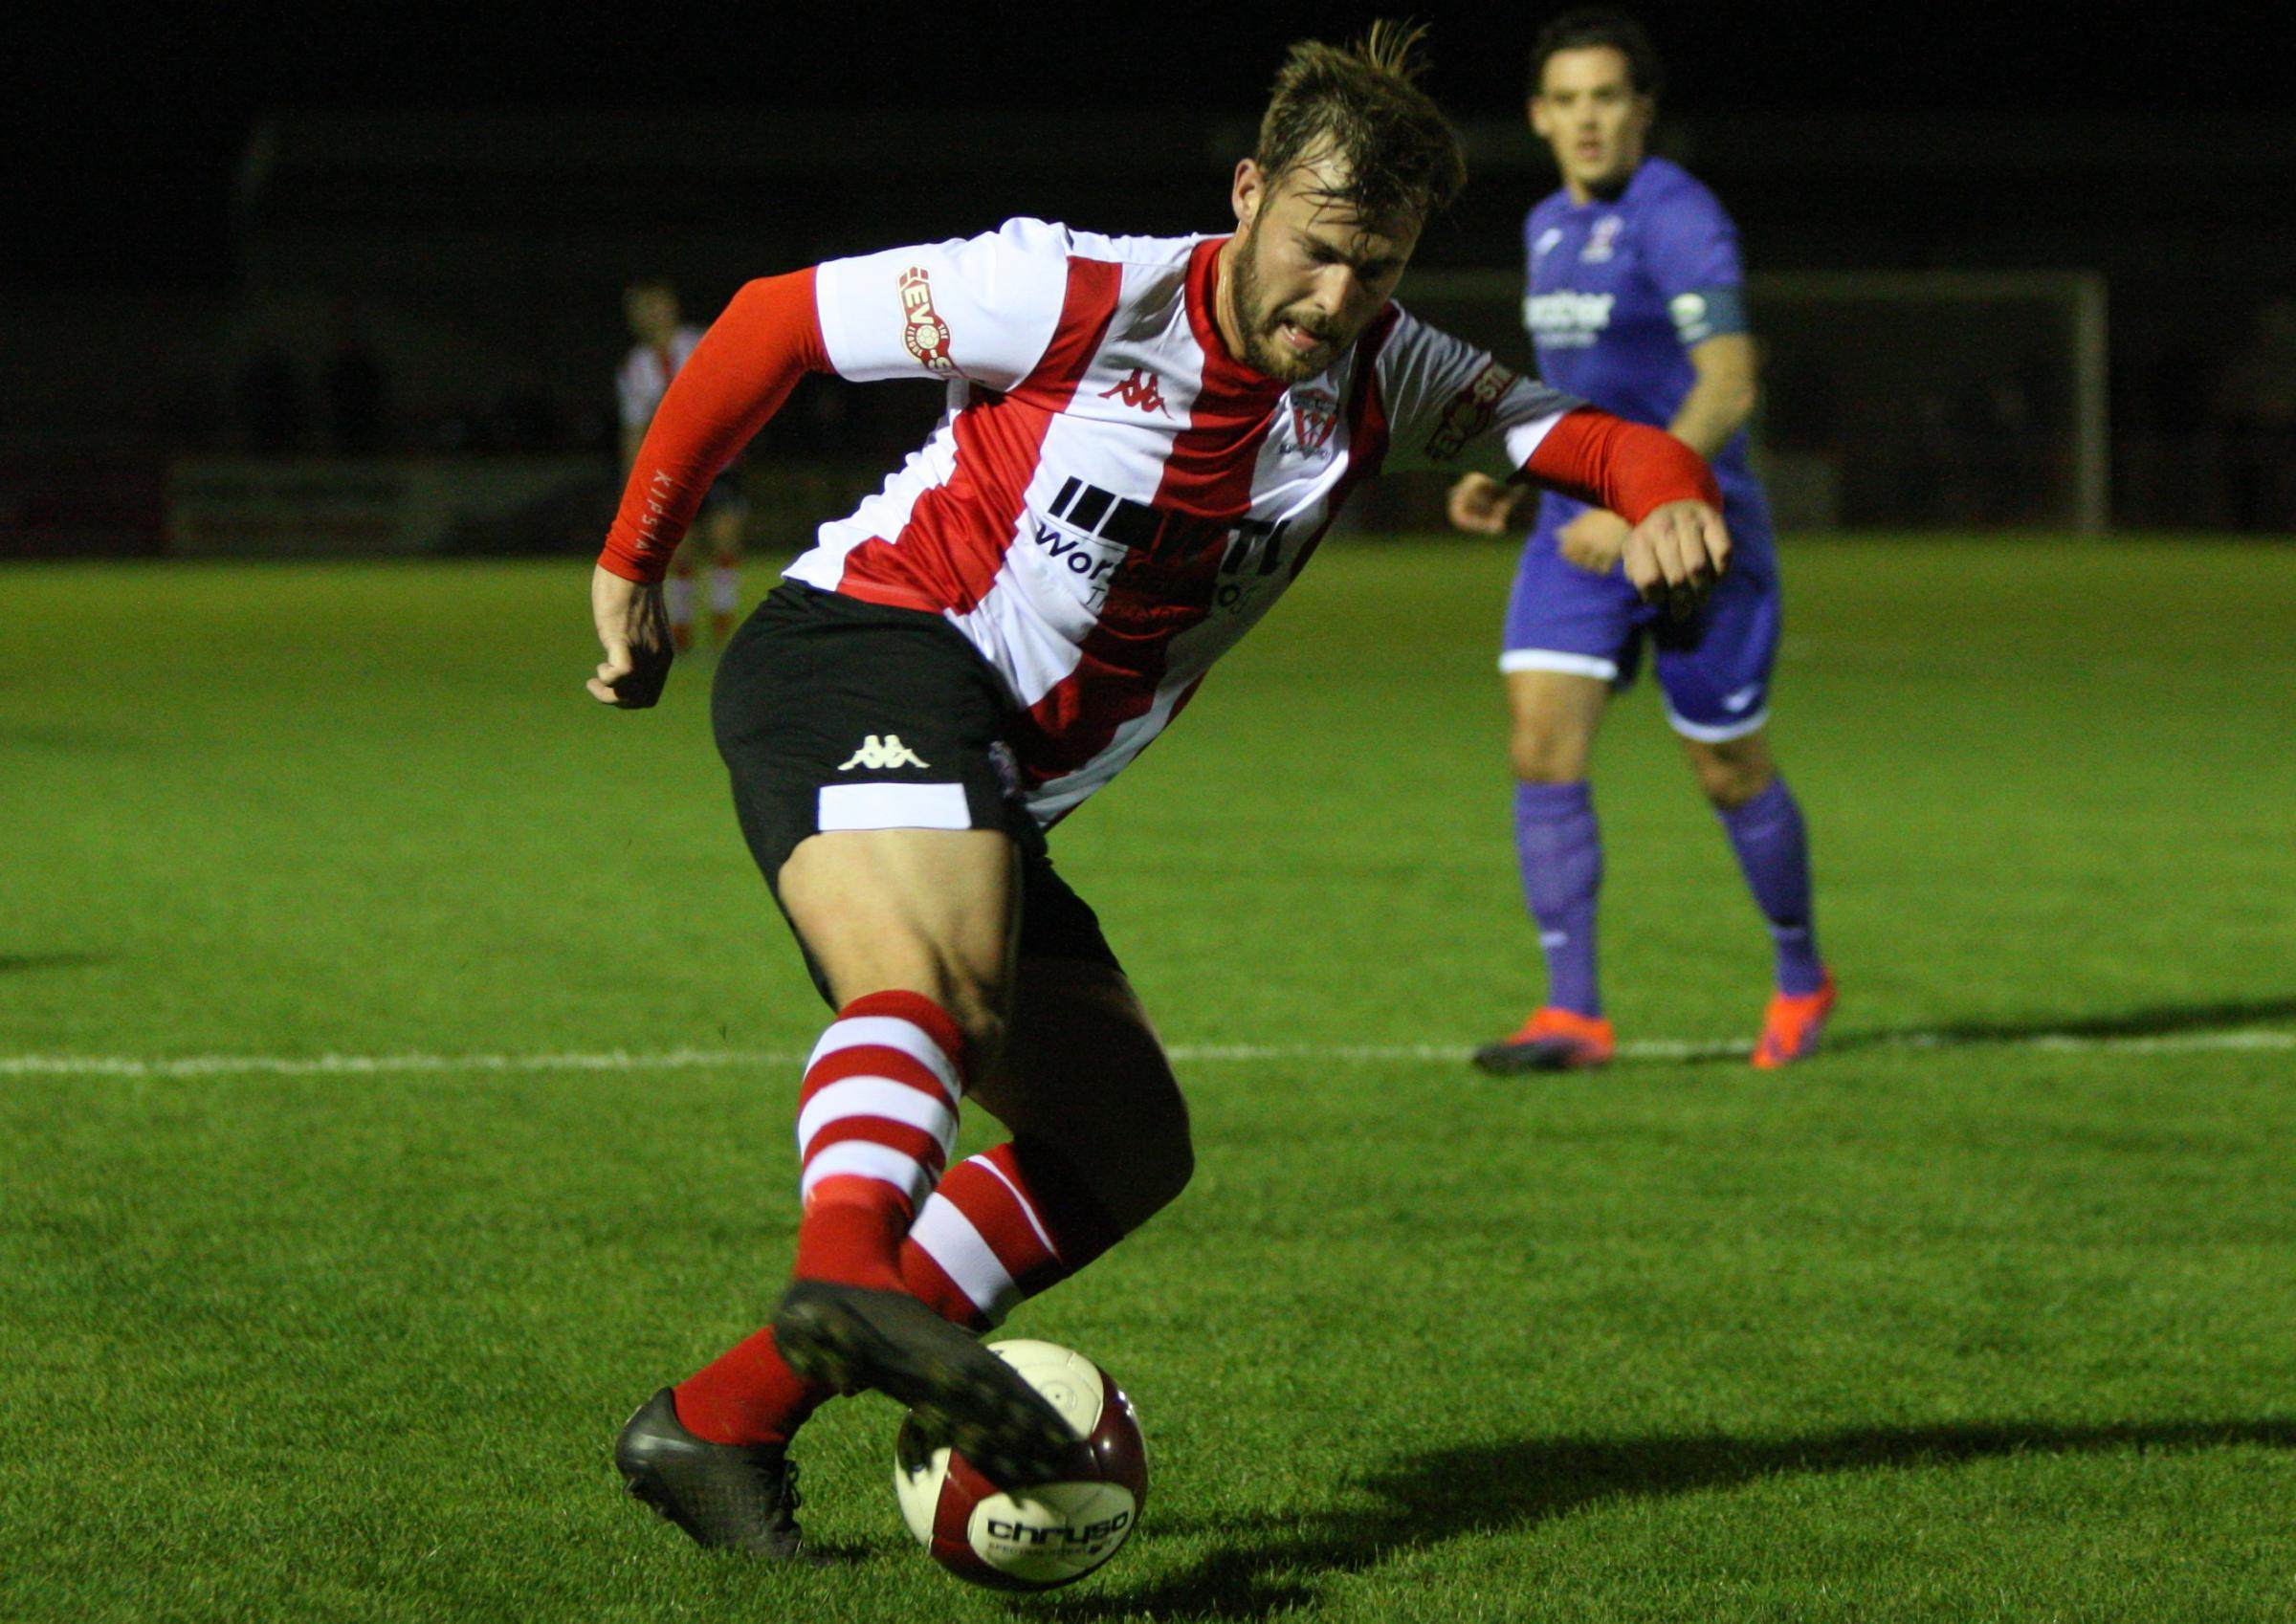 Will Jones had reason to be cheerful after ending a wait to score for Witton Albion in a Northern Premier League fixture during last weekend's five-goal thrashing of Buxton. Picture: Keith Clayton